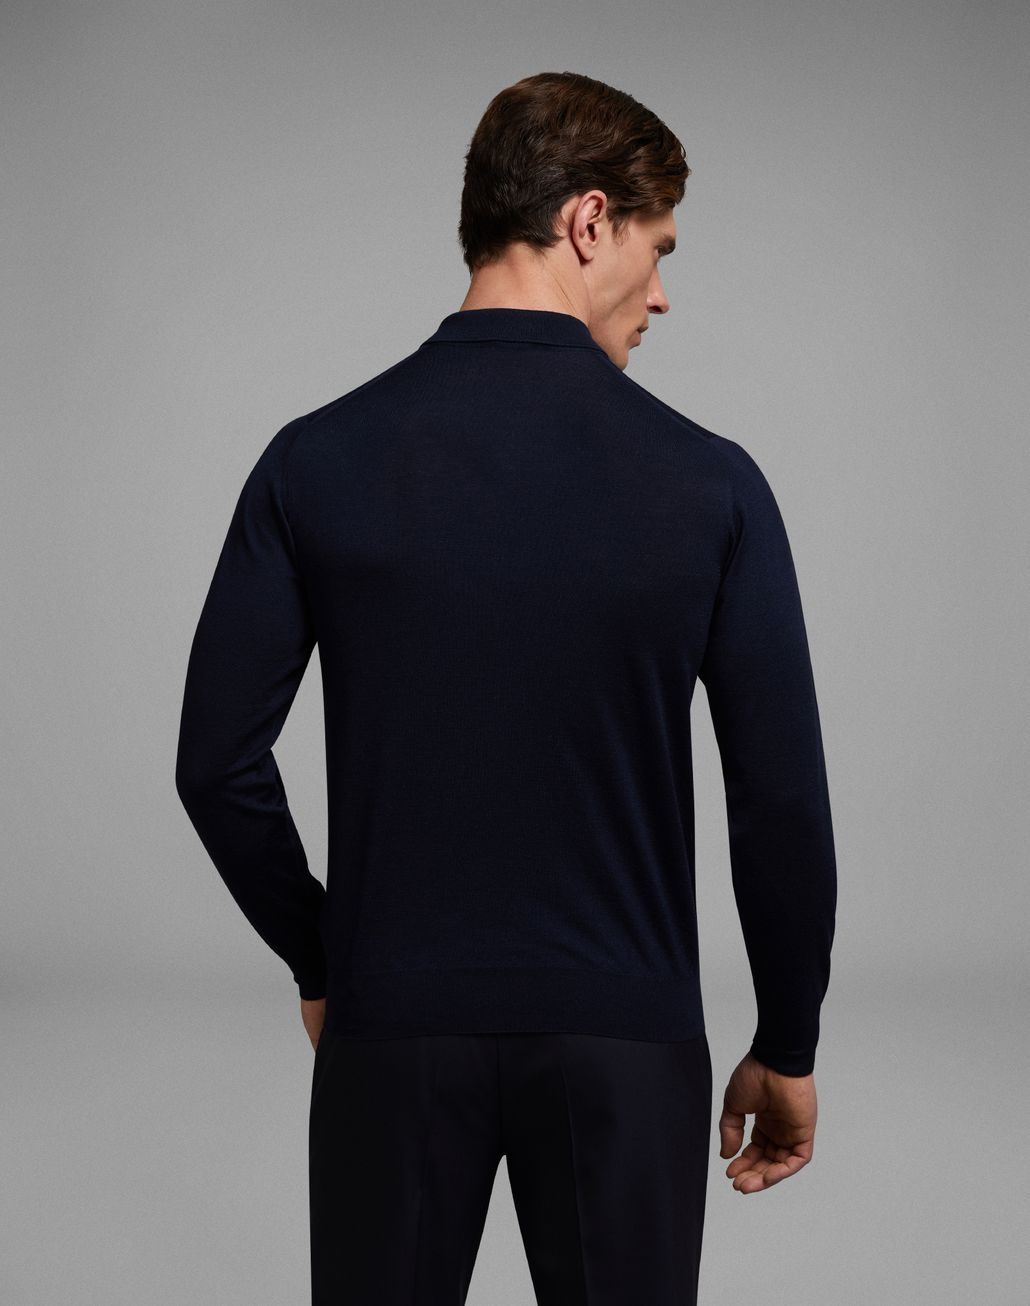 BRIONI 'Essential' Navy Blue Long Sleeved Polo Shirt Knitwear Man d